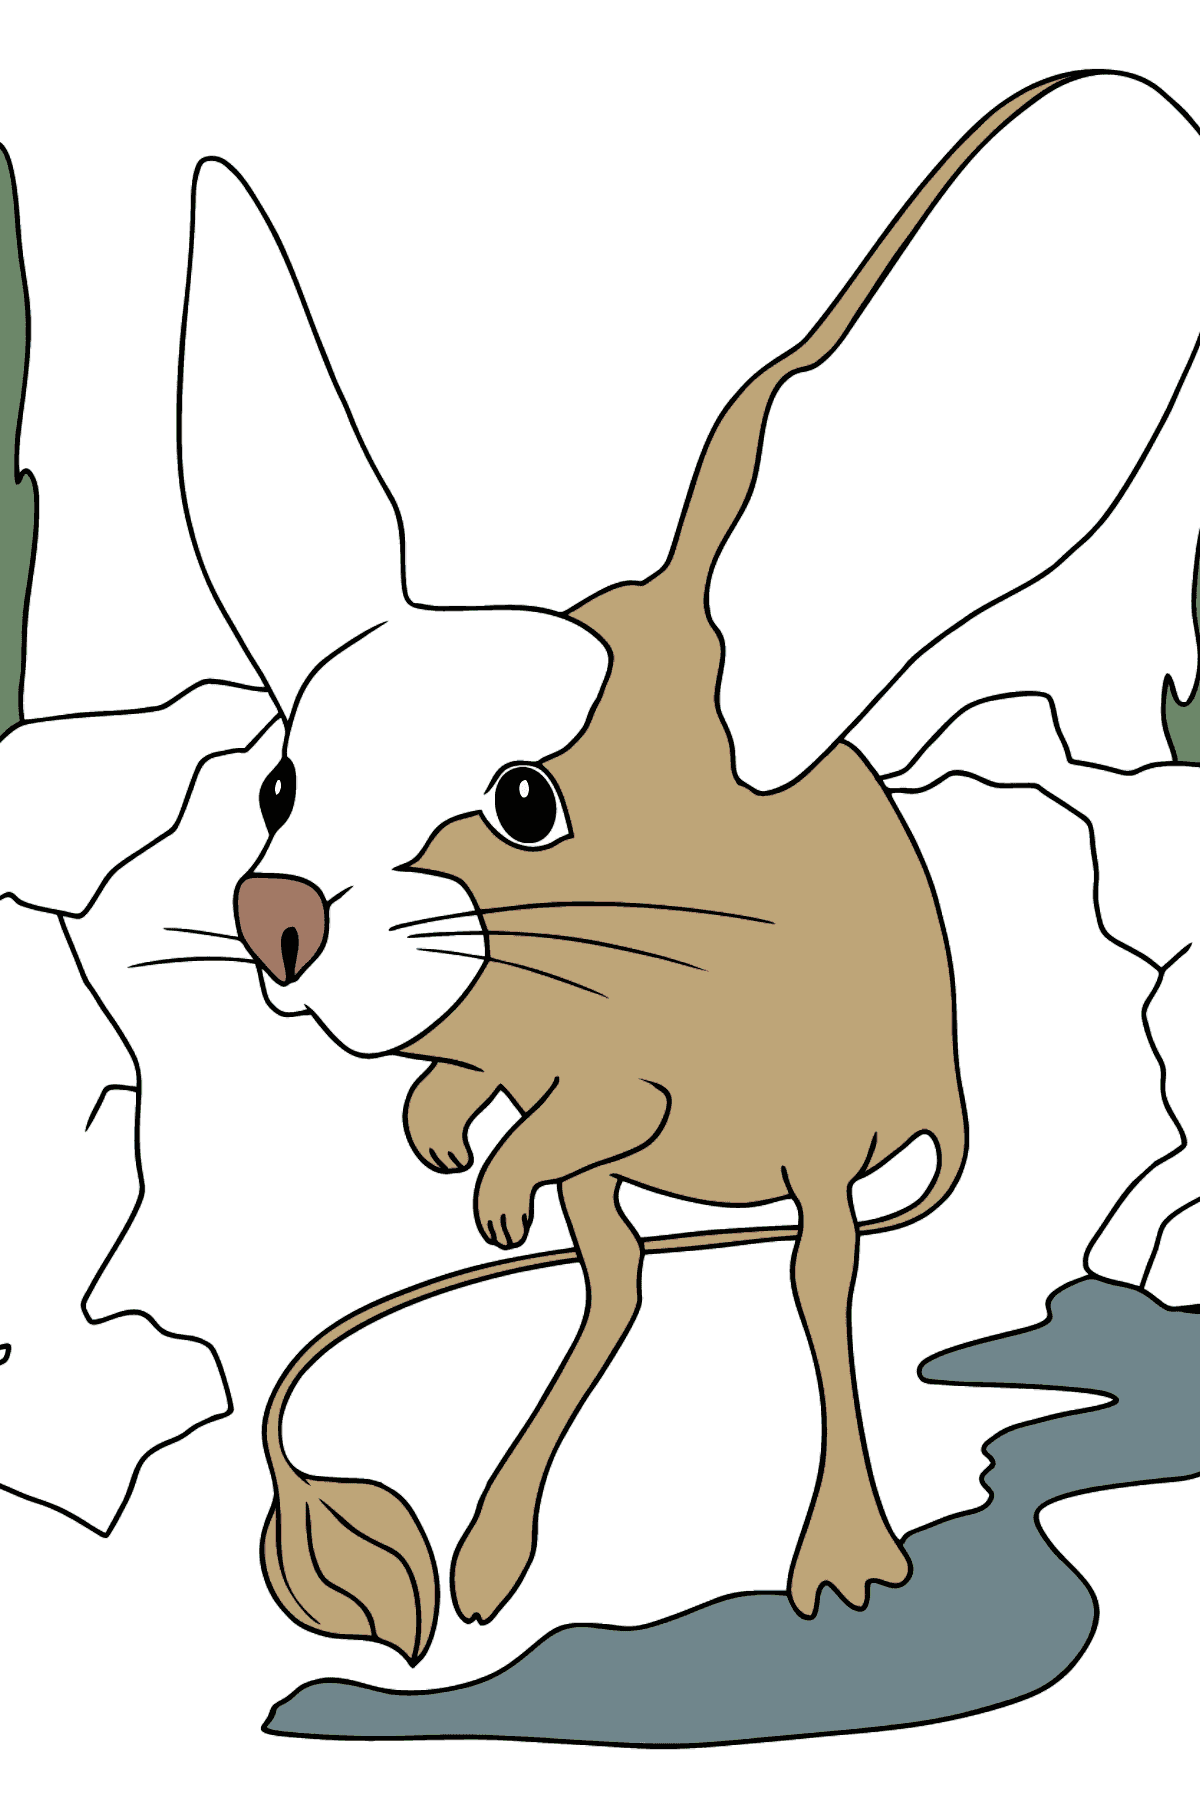 A Jerboa has a Cunning Look Coloring Page - Coloring Pages for Kids